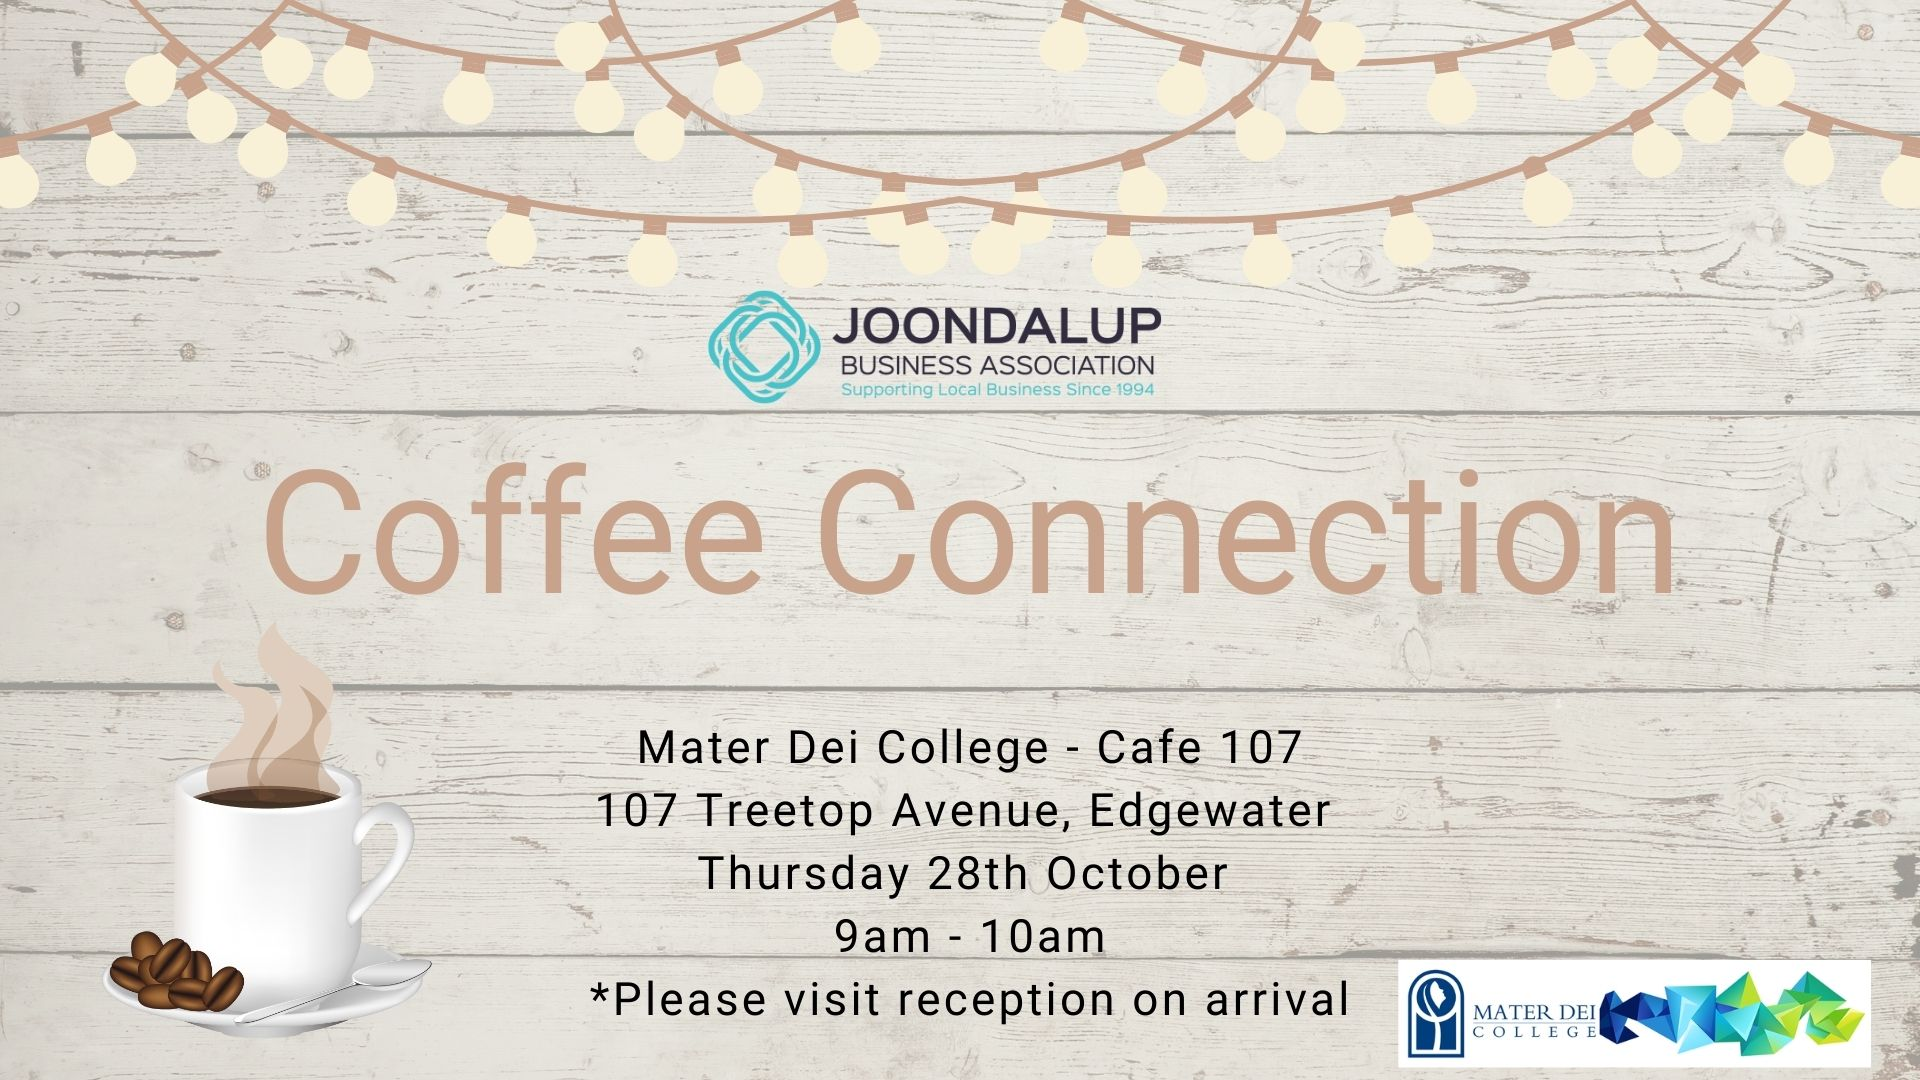 Coffee Connection - Mater Dei College